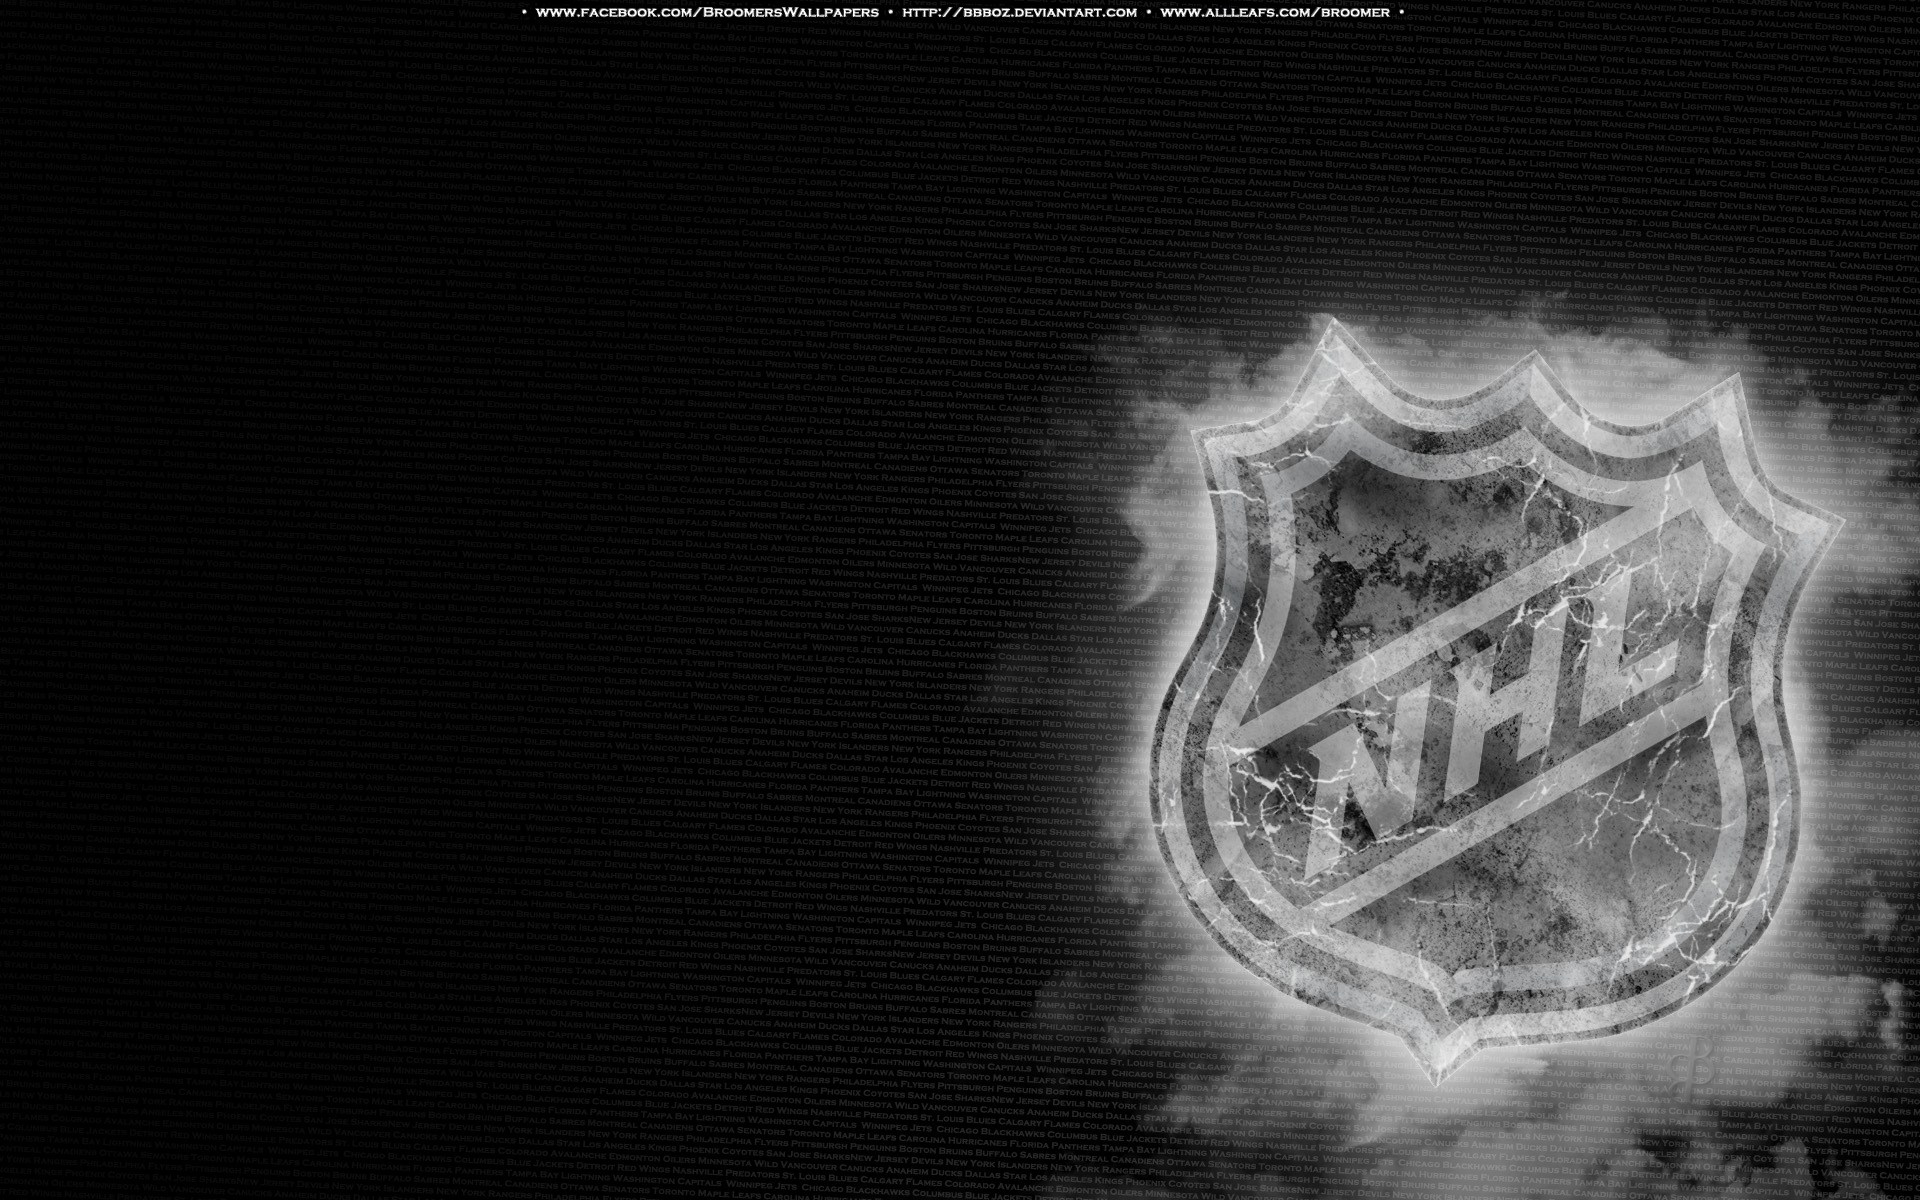 Nhl Wallpaper Nhl ice by bbboz